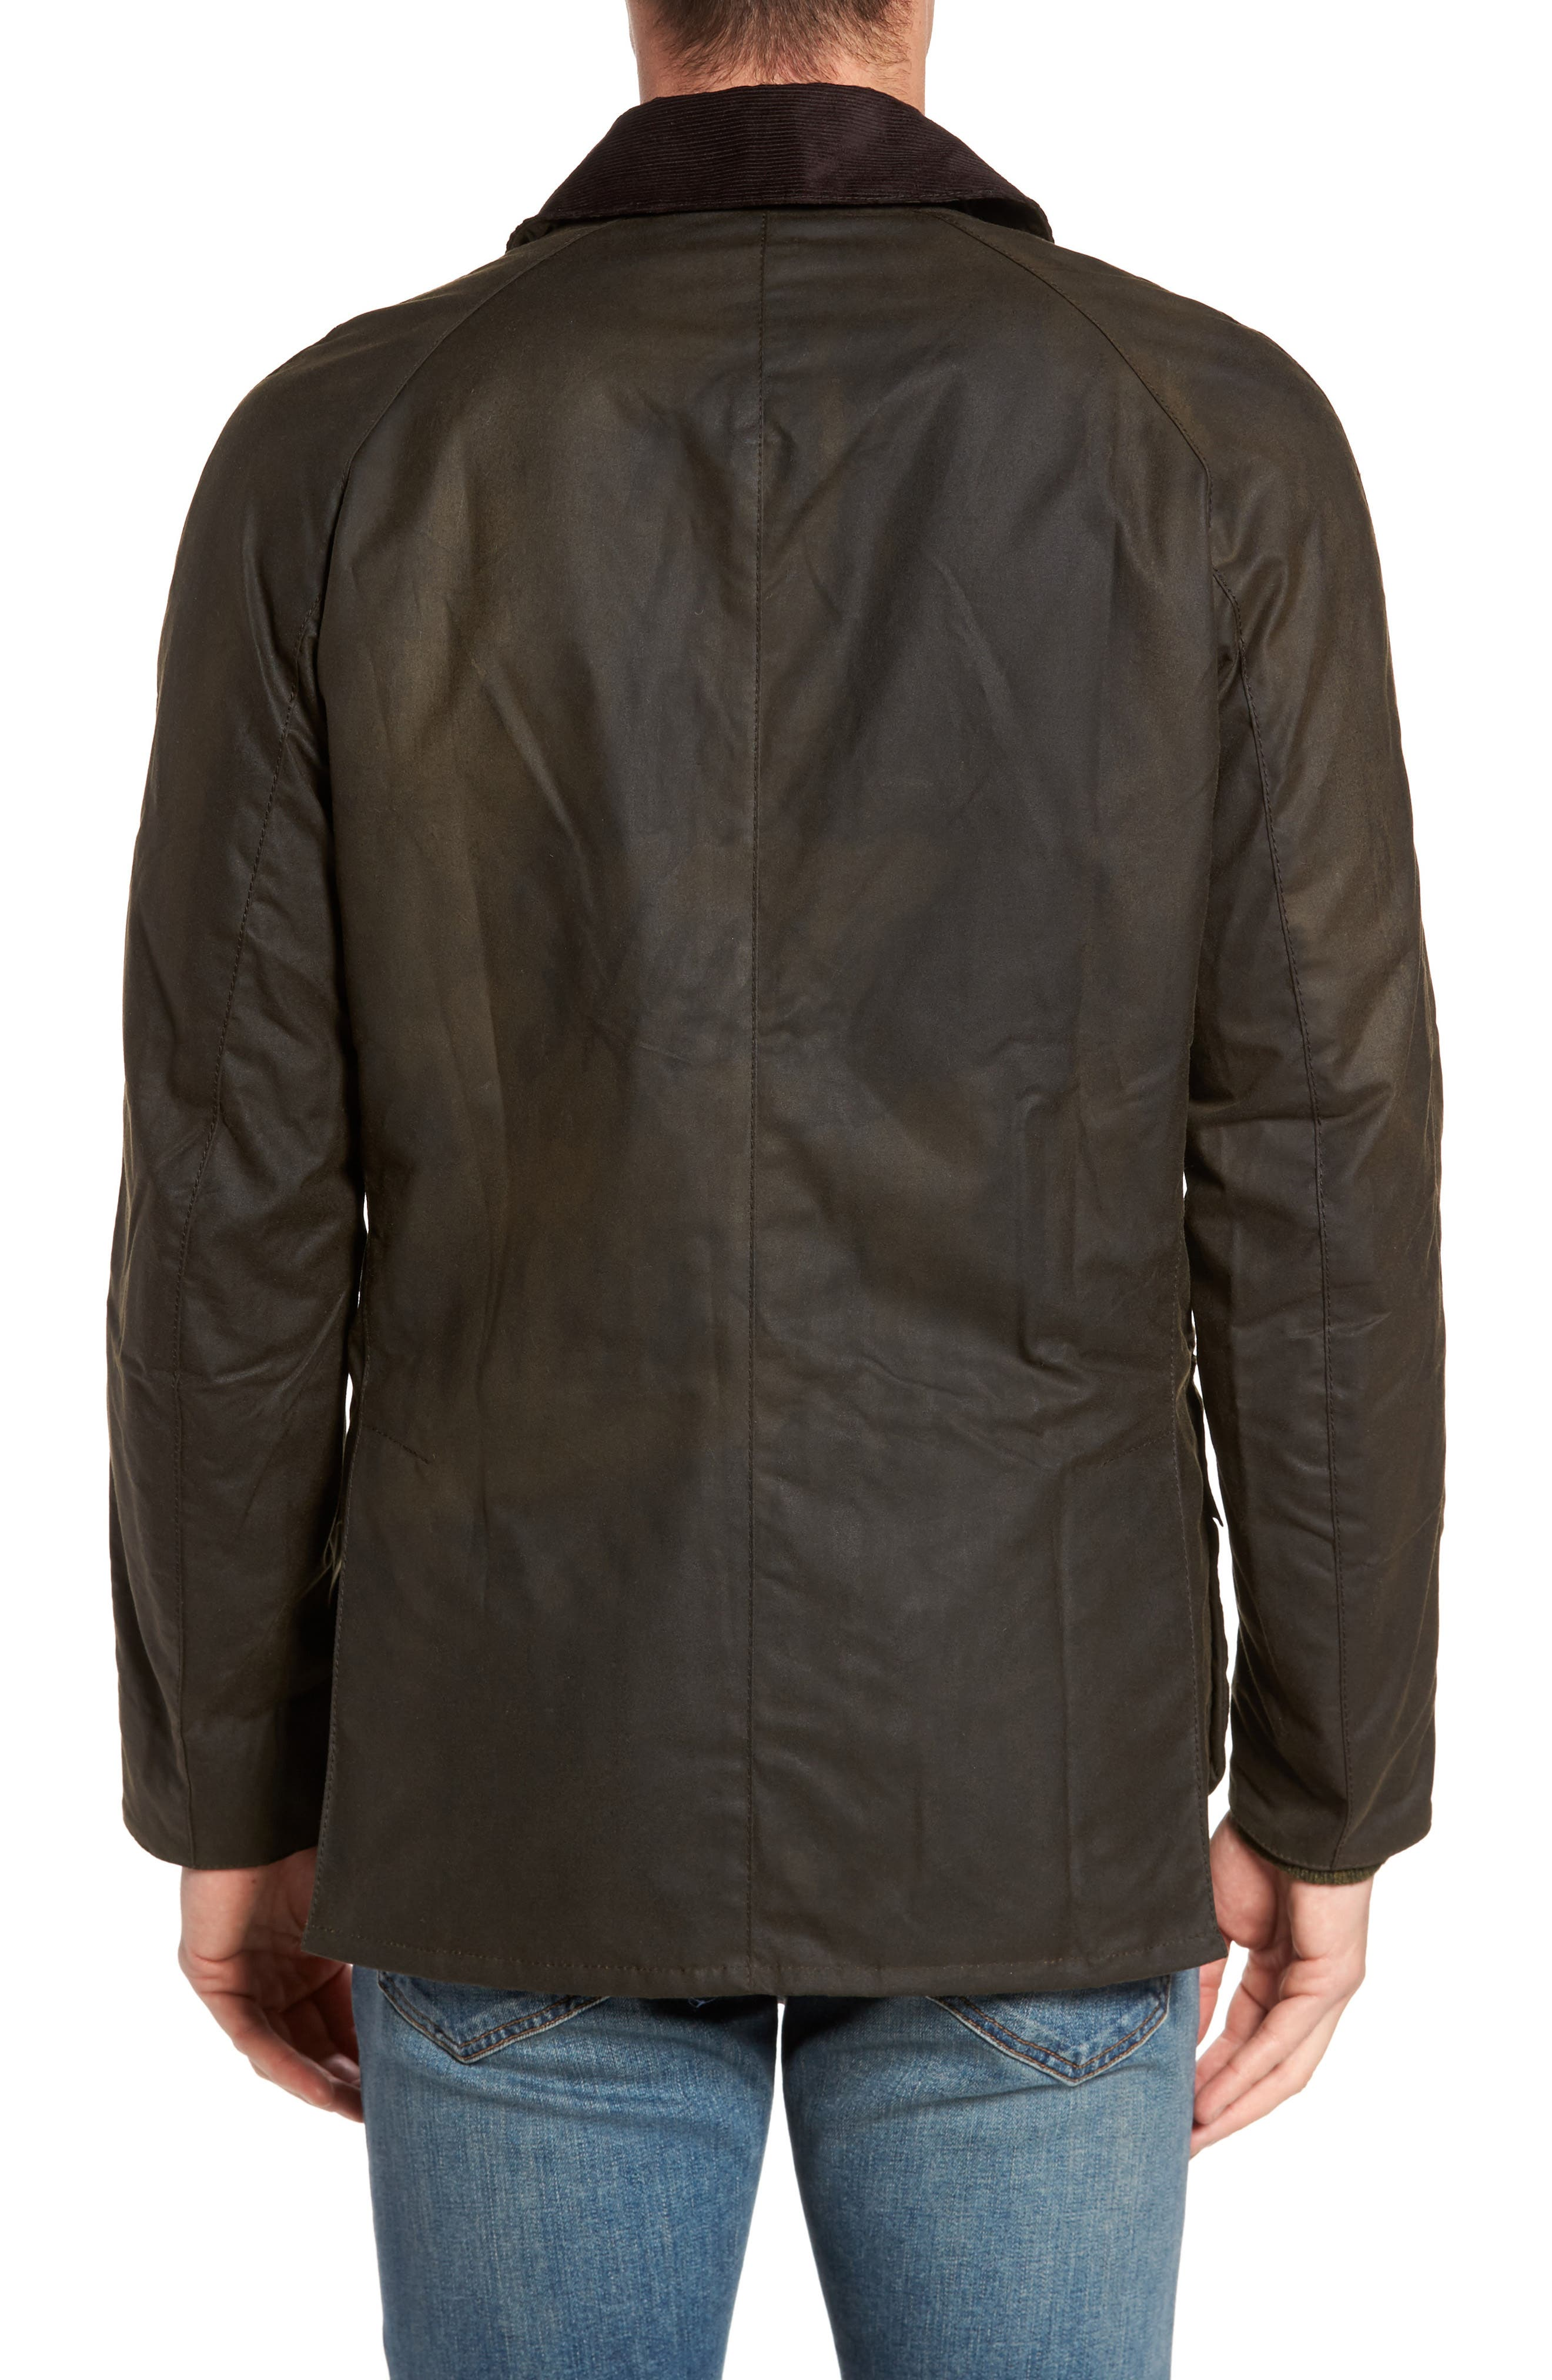 BARBOUR, Ashby Wax Jacket, Alternate thumbnail 2, color, OLIVE